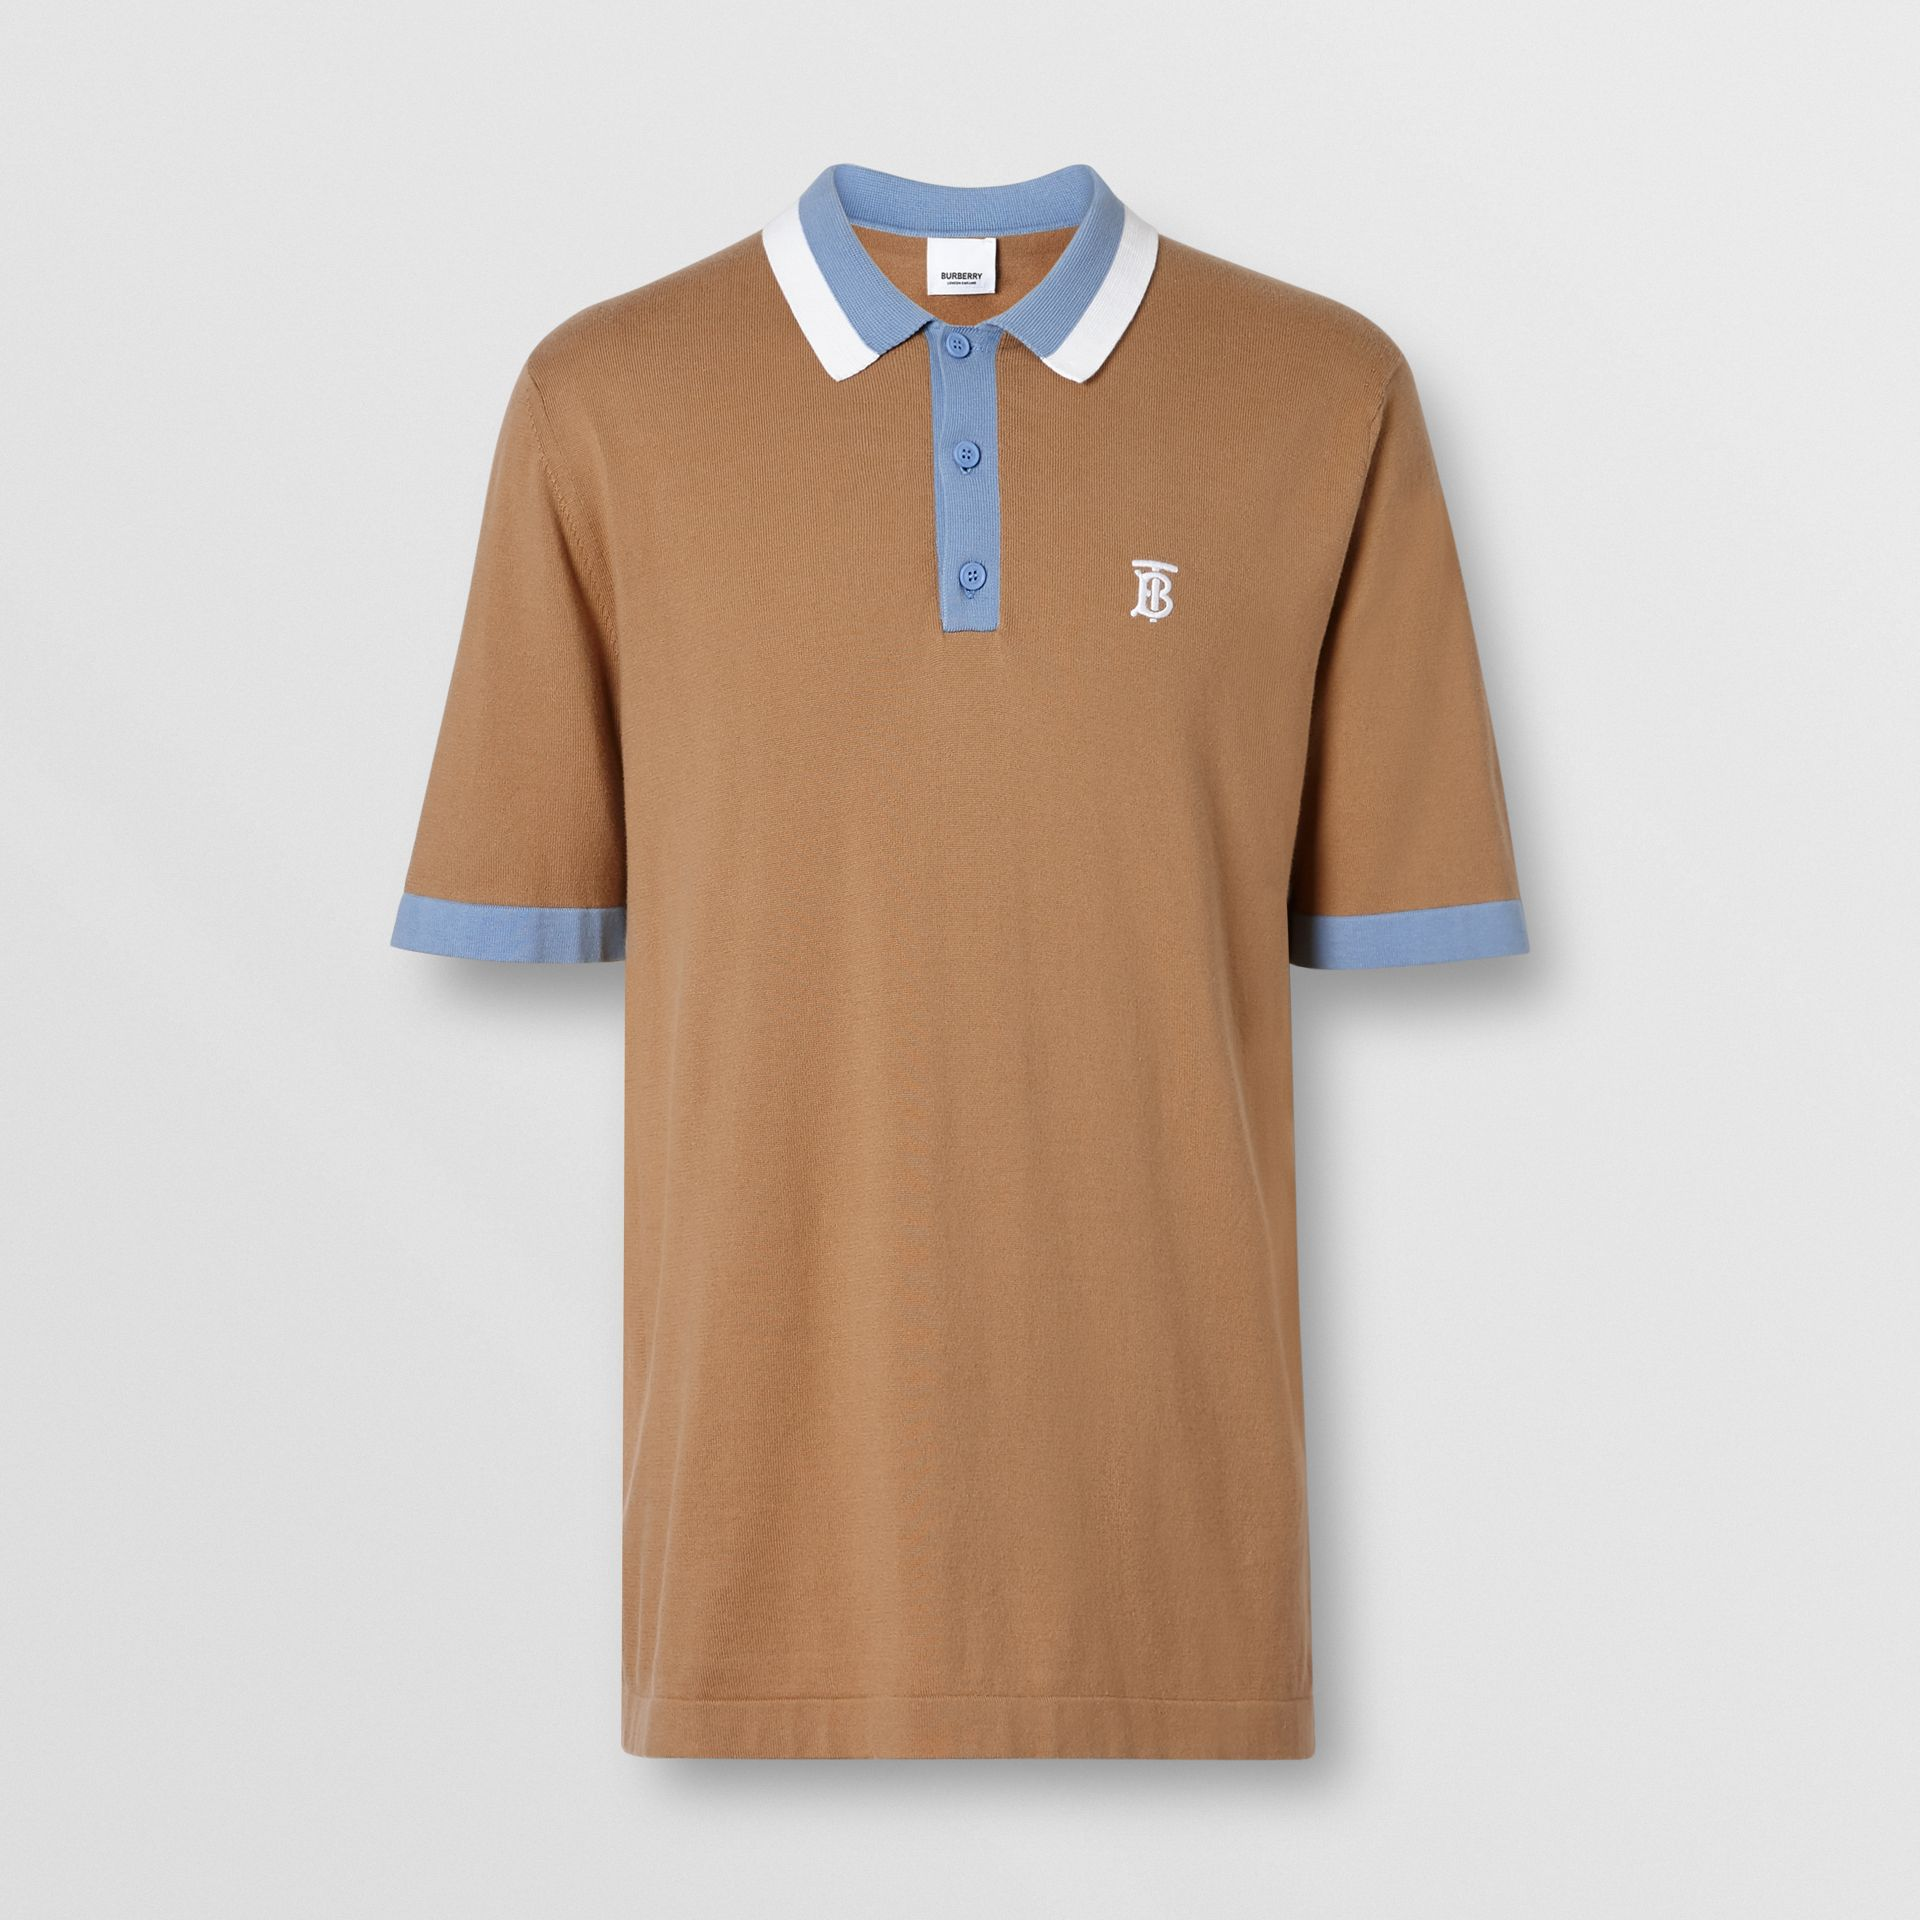 Monogram Motif Tipped Cotton Polo Shirt in Camel - Men | Burberry Singapore - gallery image 3